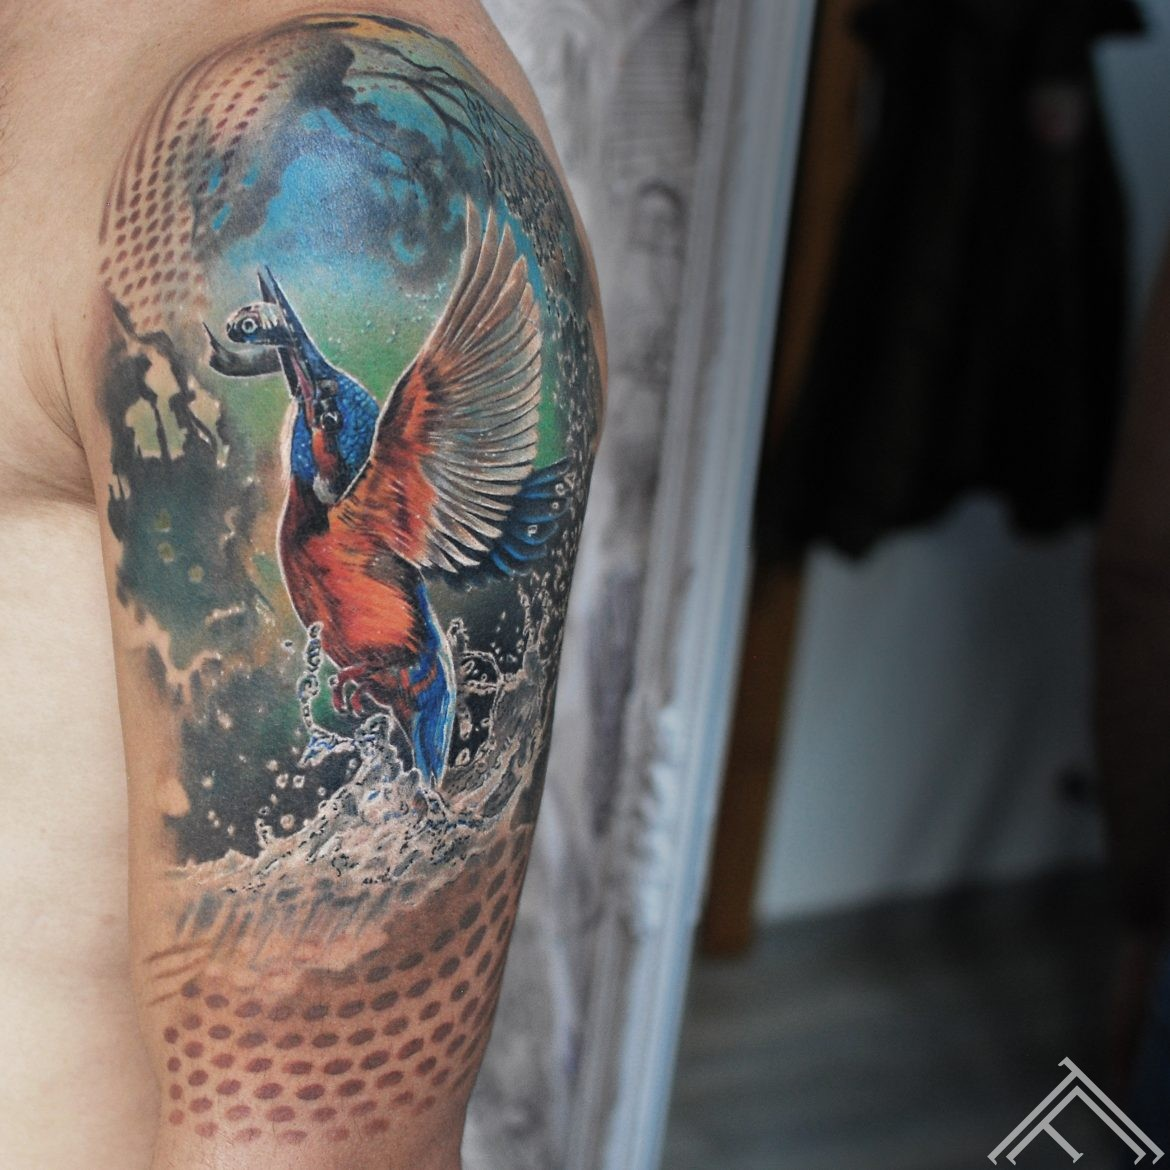 kingfisher-zivju-zivjudzenitis-bird-putns-nature-art-animal-tattoofrequency-riga-tetovejums-tetovesana-maksla-mp-marispavlo-healed